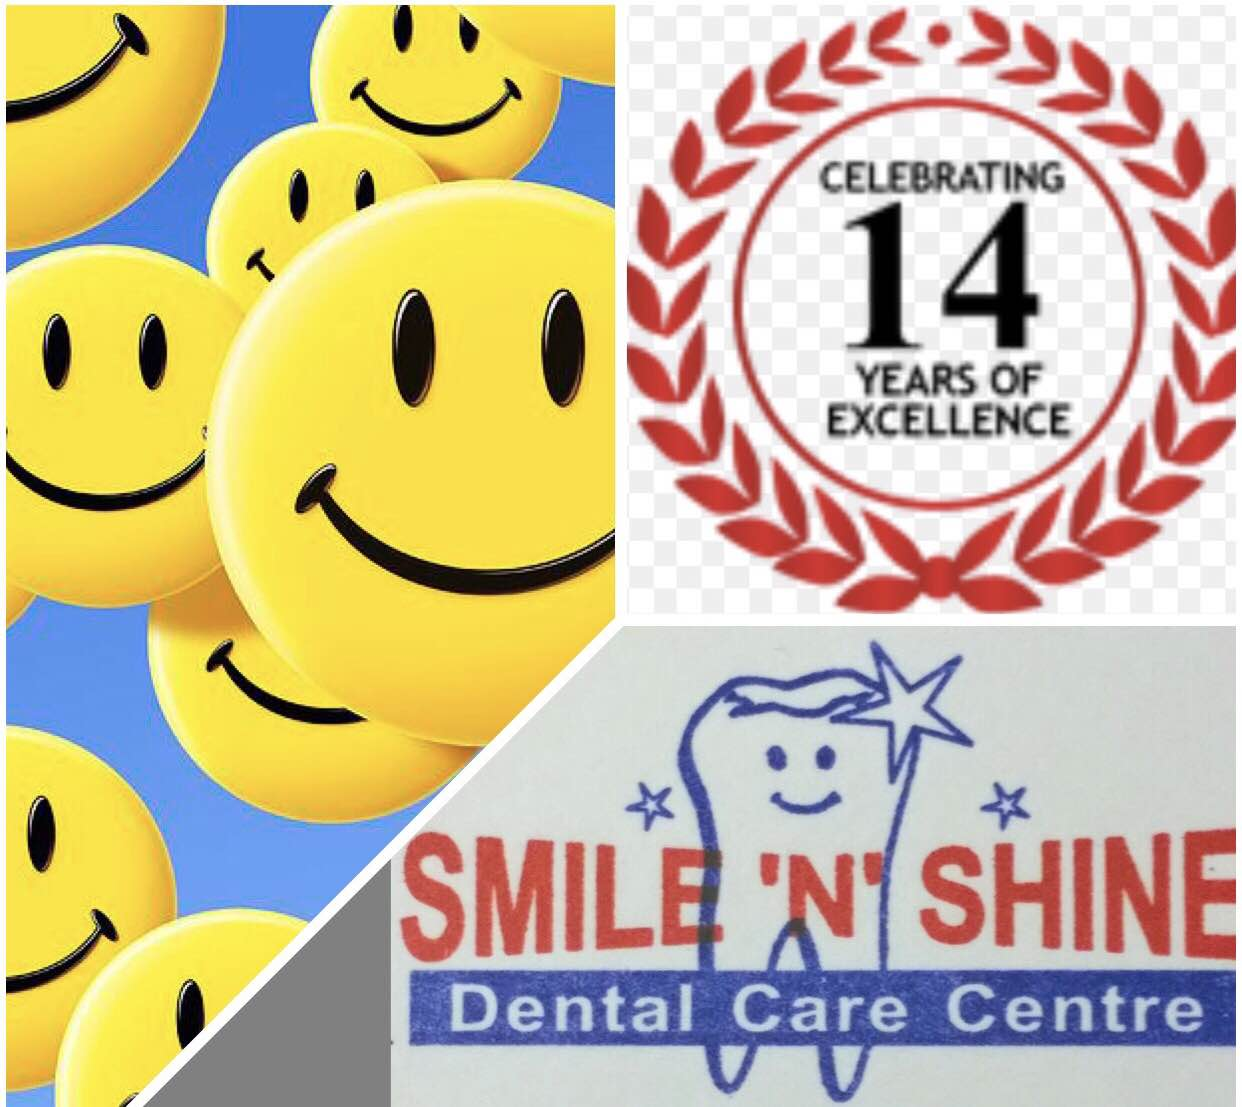 Smile n Shine Dental Care Centre - DLF city -2 GURGAON happily announces completion of 14 years of excellence. We wish to thanks our entire Team of Specialists . We are in constant endeavour to serve our best to all are patients. Please feel free to call us or take online appointment. Open all 7 days Special offer Complimentary ORTHODONTIC and IMPLANTS Consultation 10 percent discount on ORTHODONTIC treatment & IMPLANTS